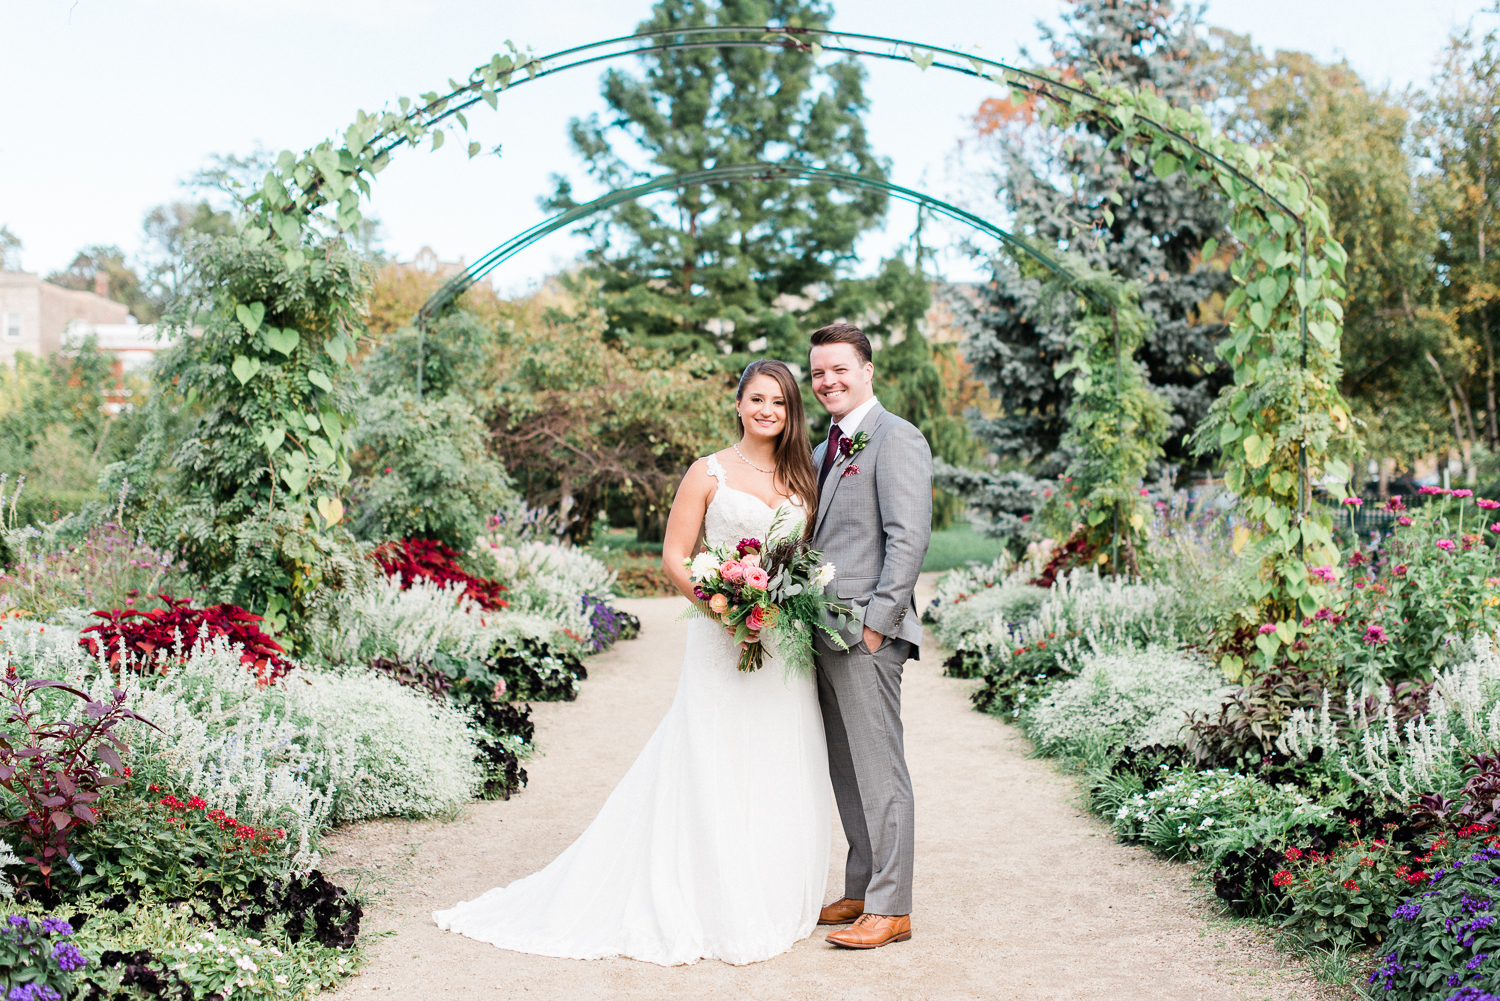 Garfield Park Conservatory Wedding.Featured Wedding Three Brittany Bekas Photography